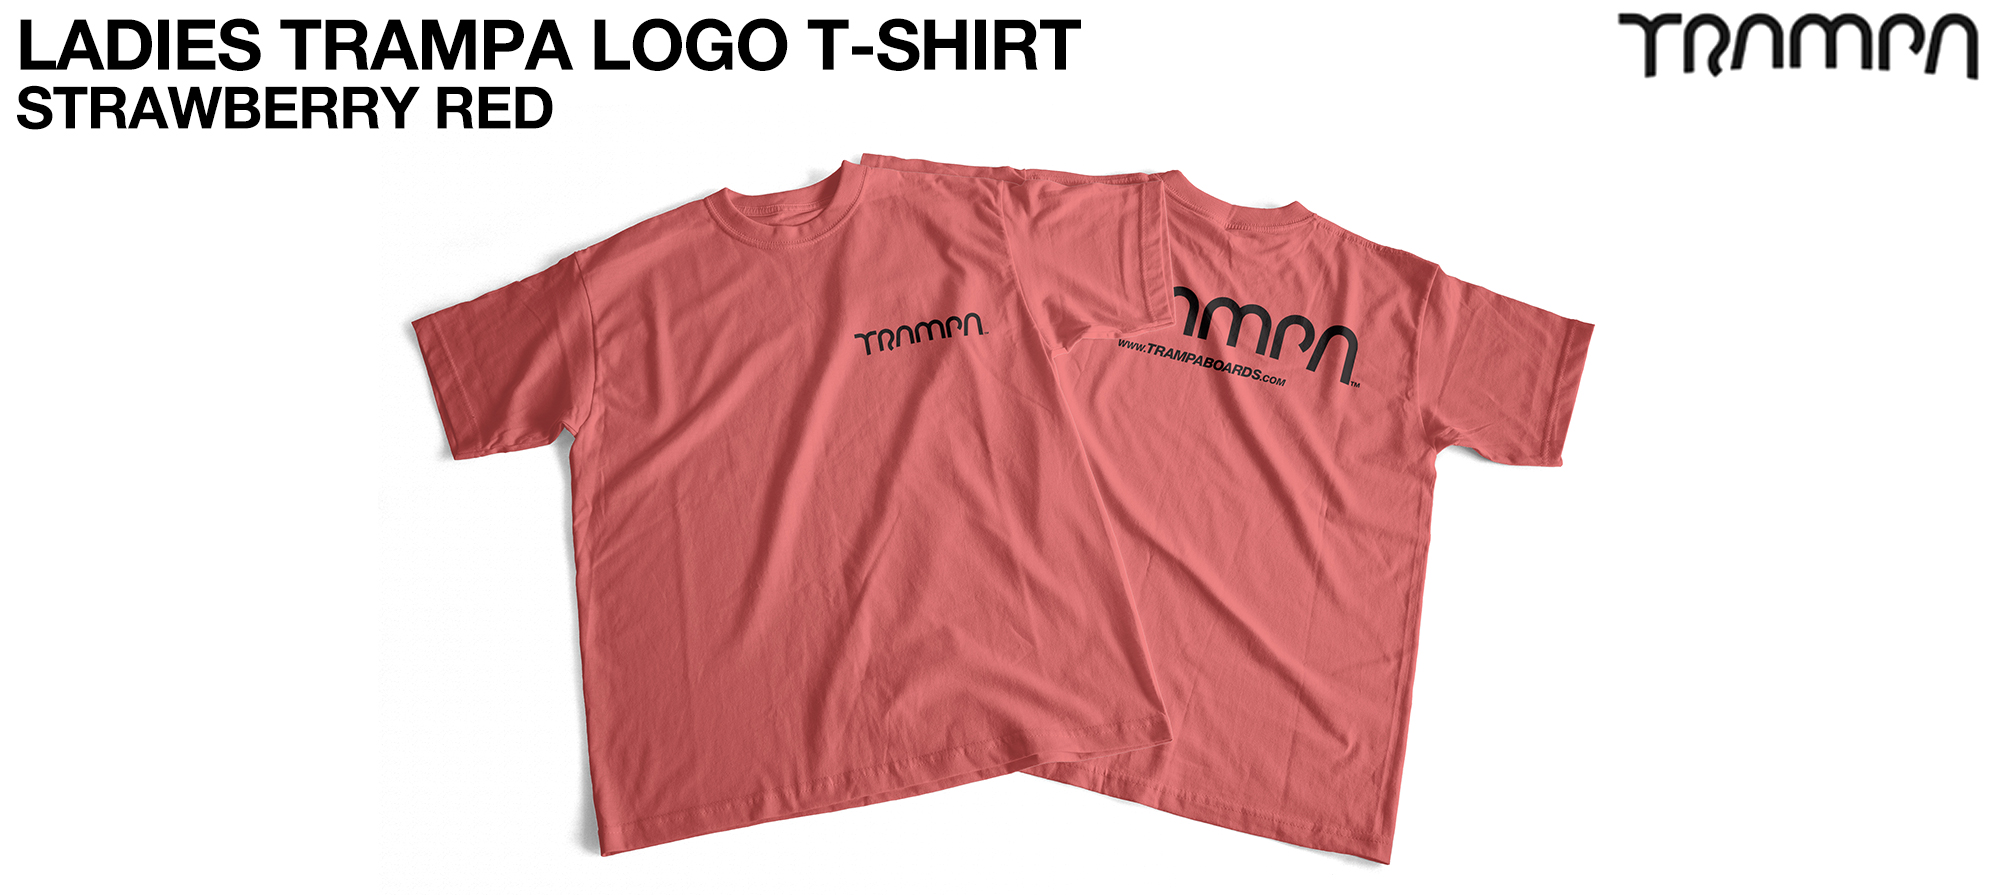 StrawBerry Red T-Shirt